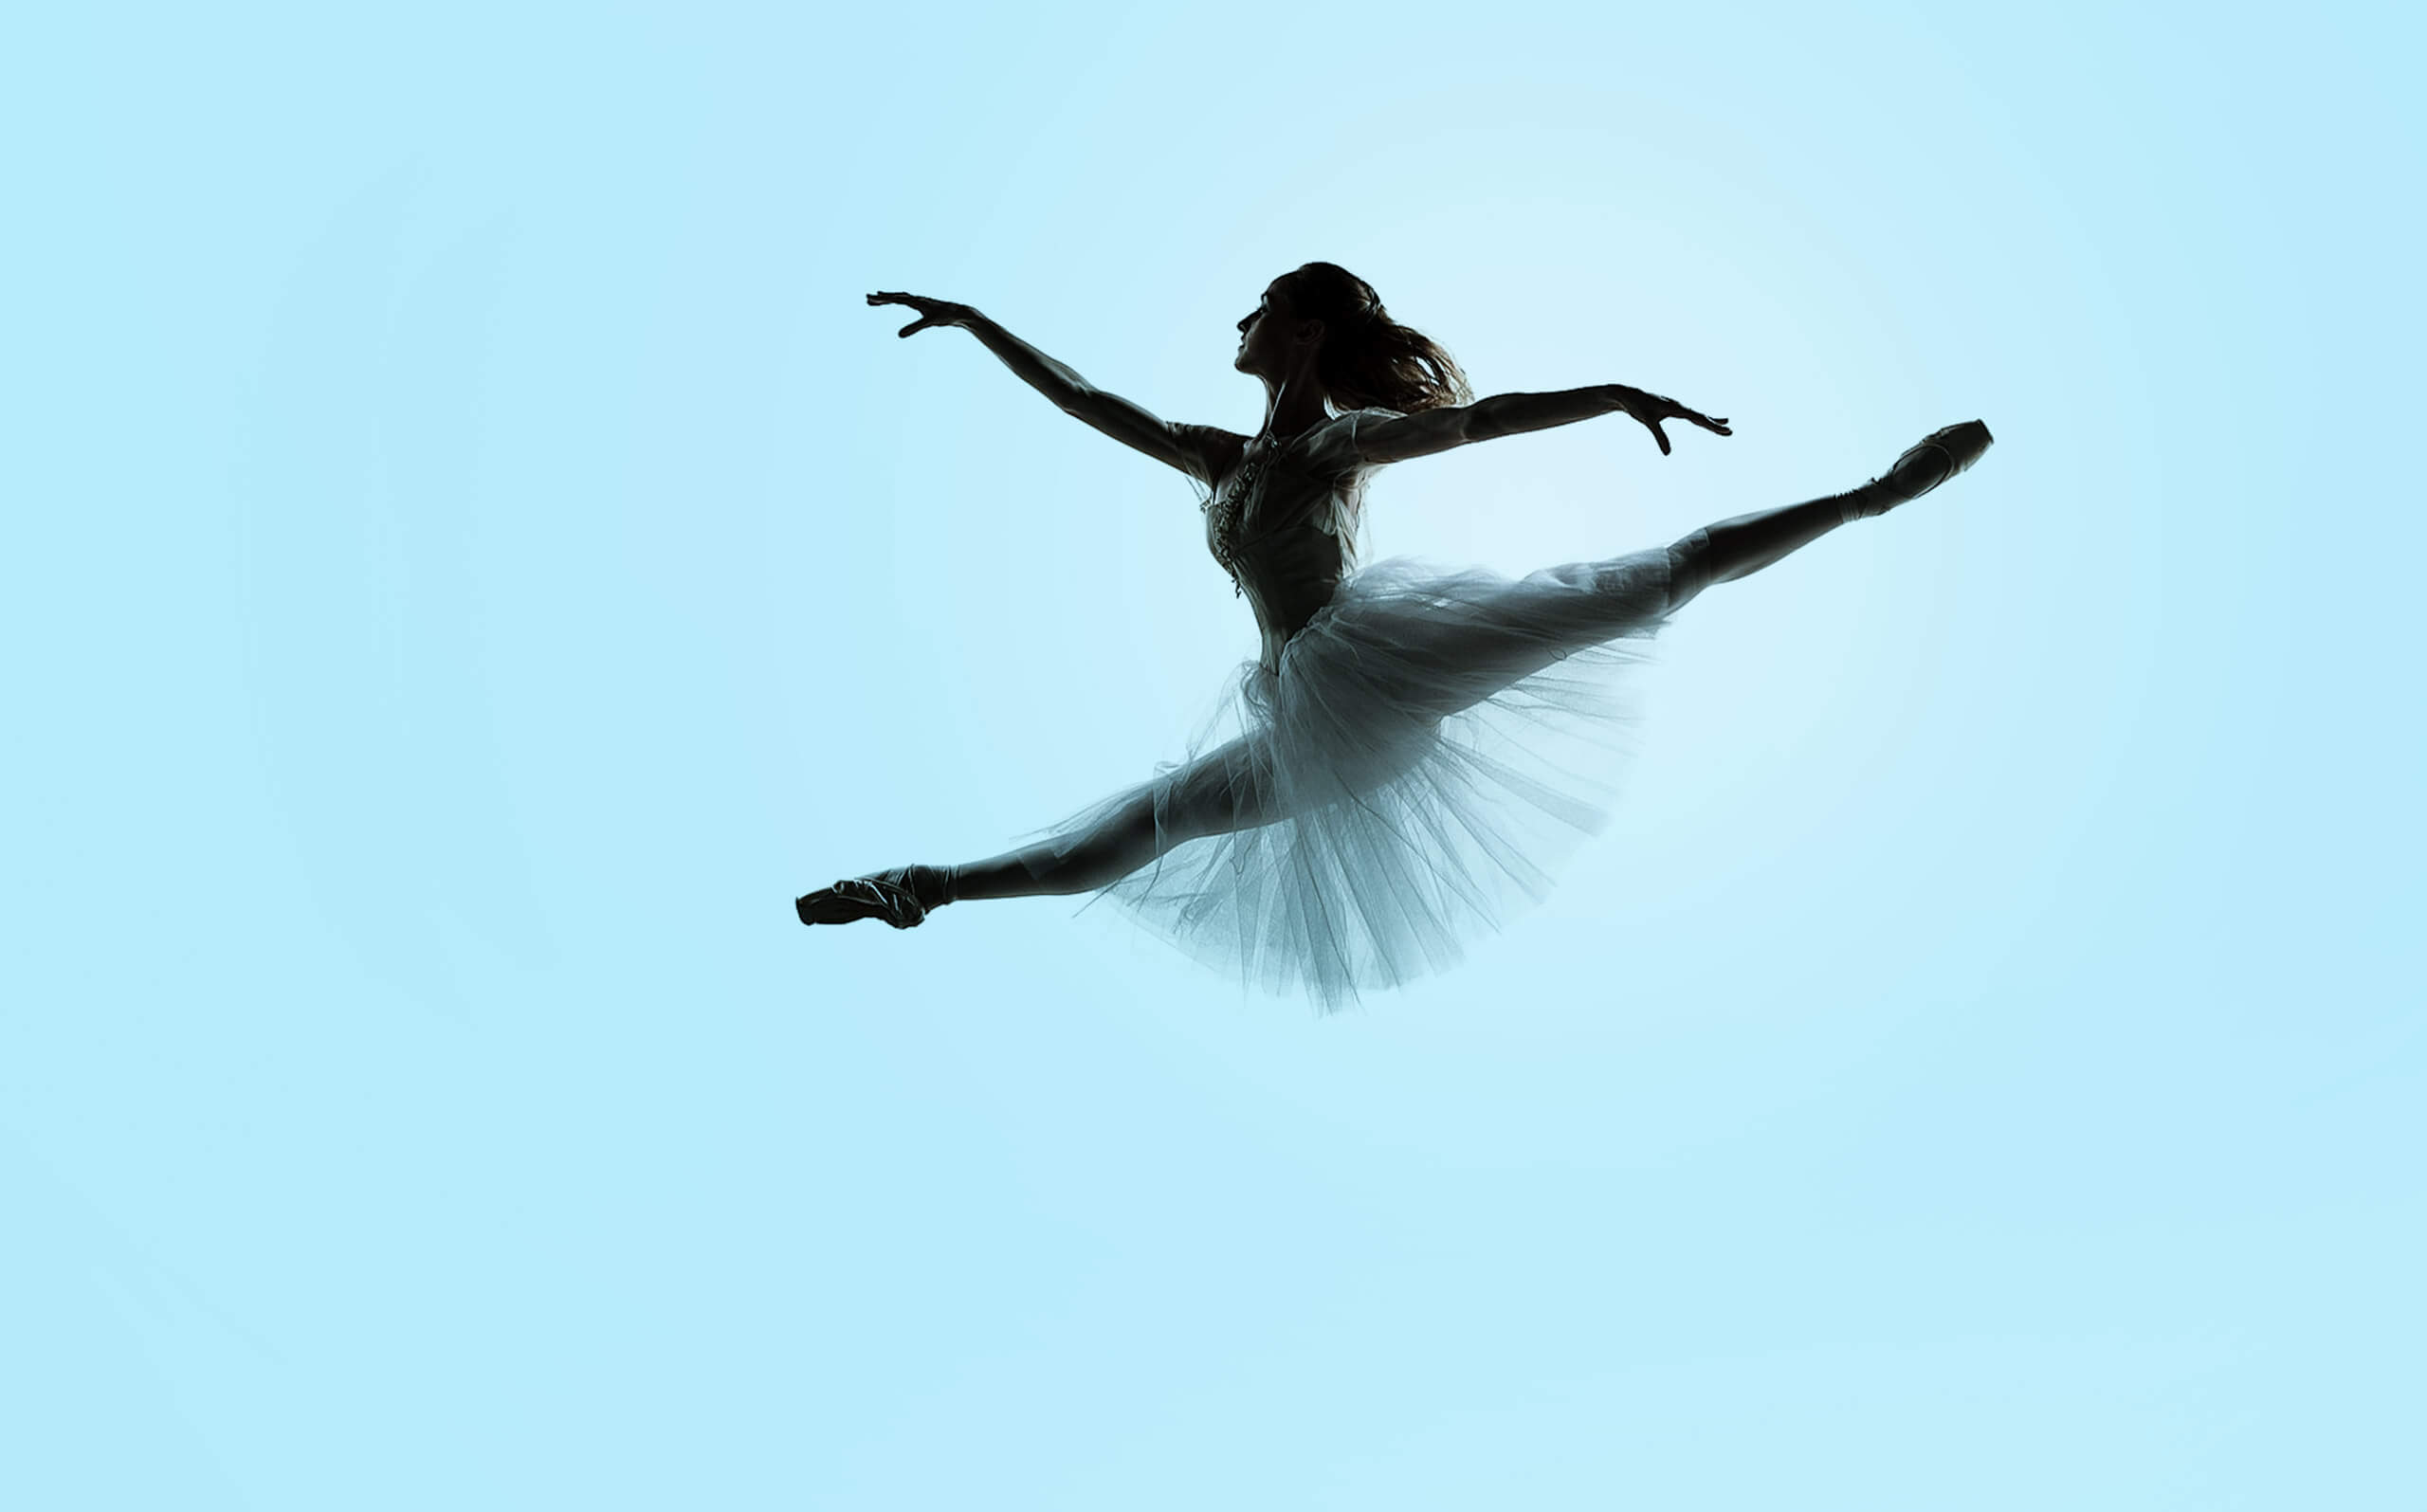 Photograph of Ballerina jumping